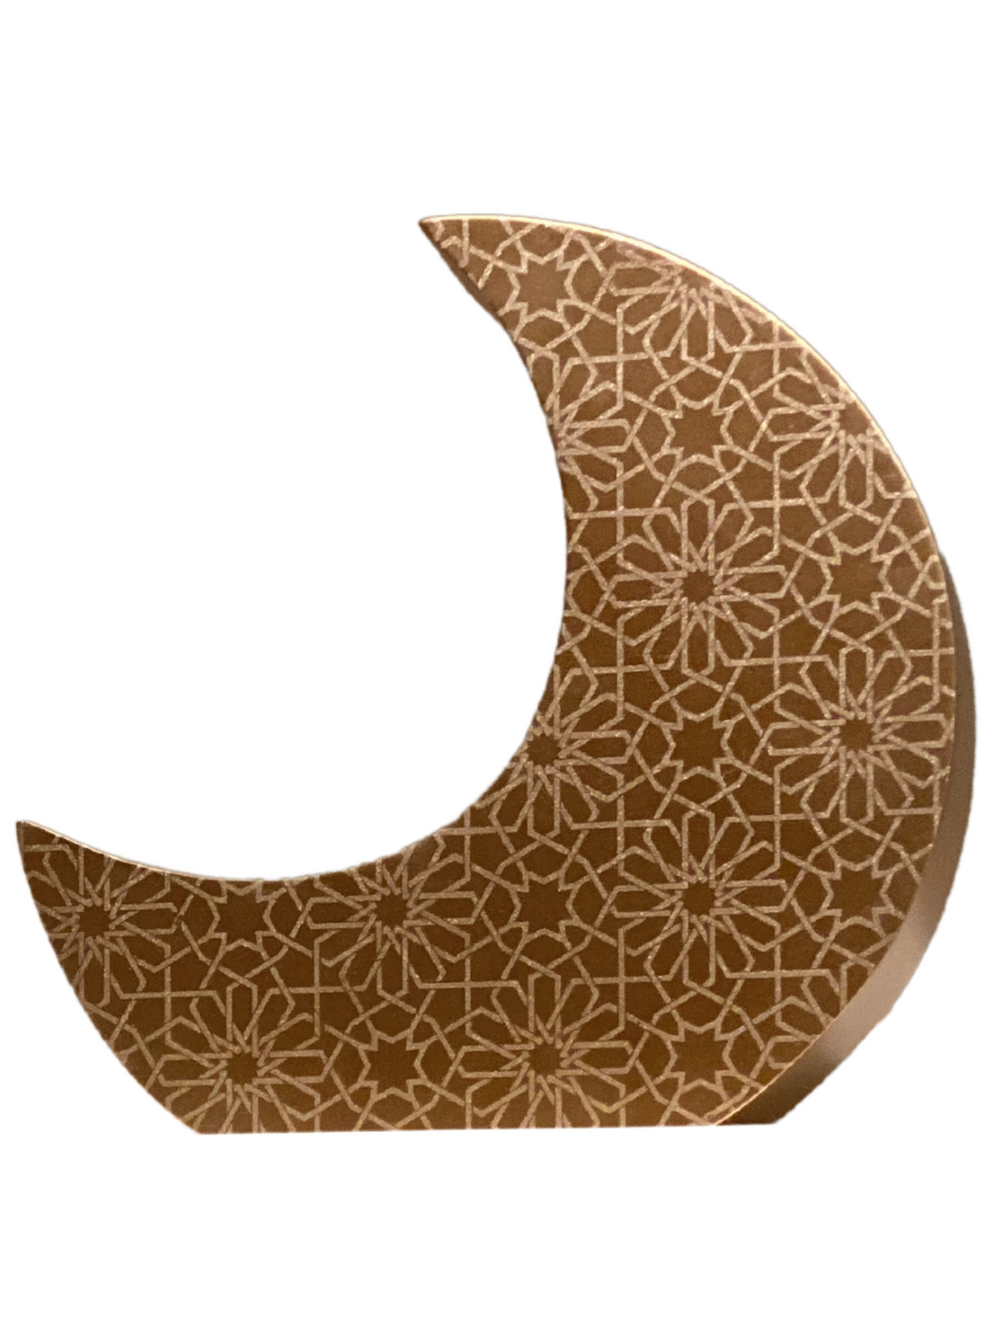 Crescent Moon Charity (Sadaqah) Coin Bank - Rose Gold